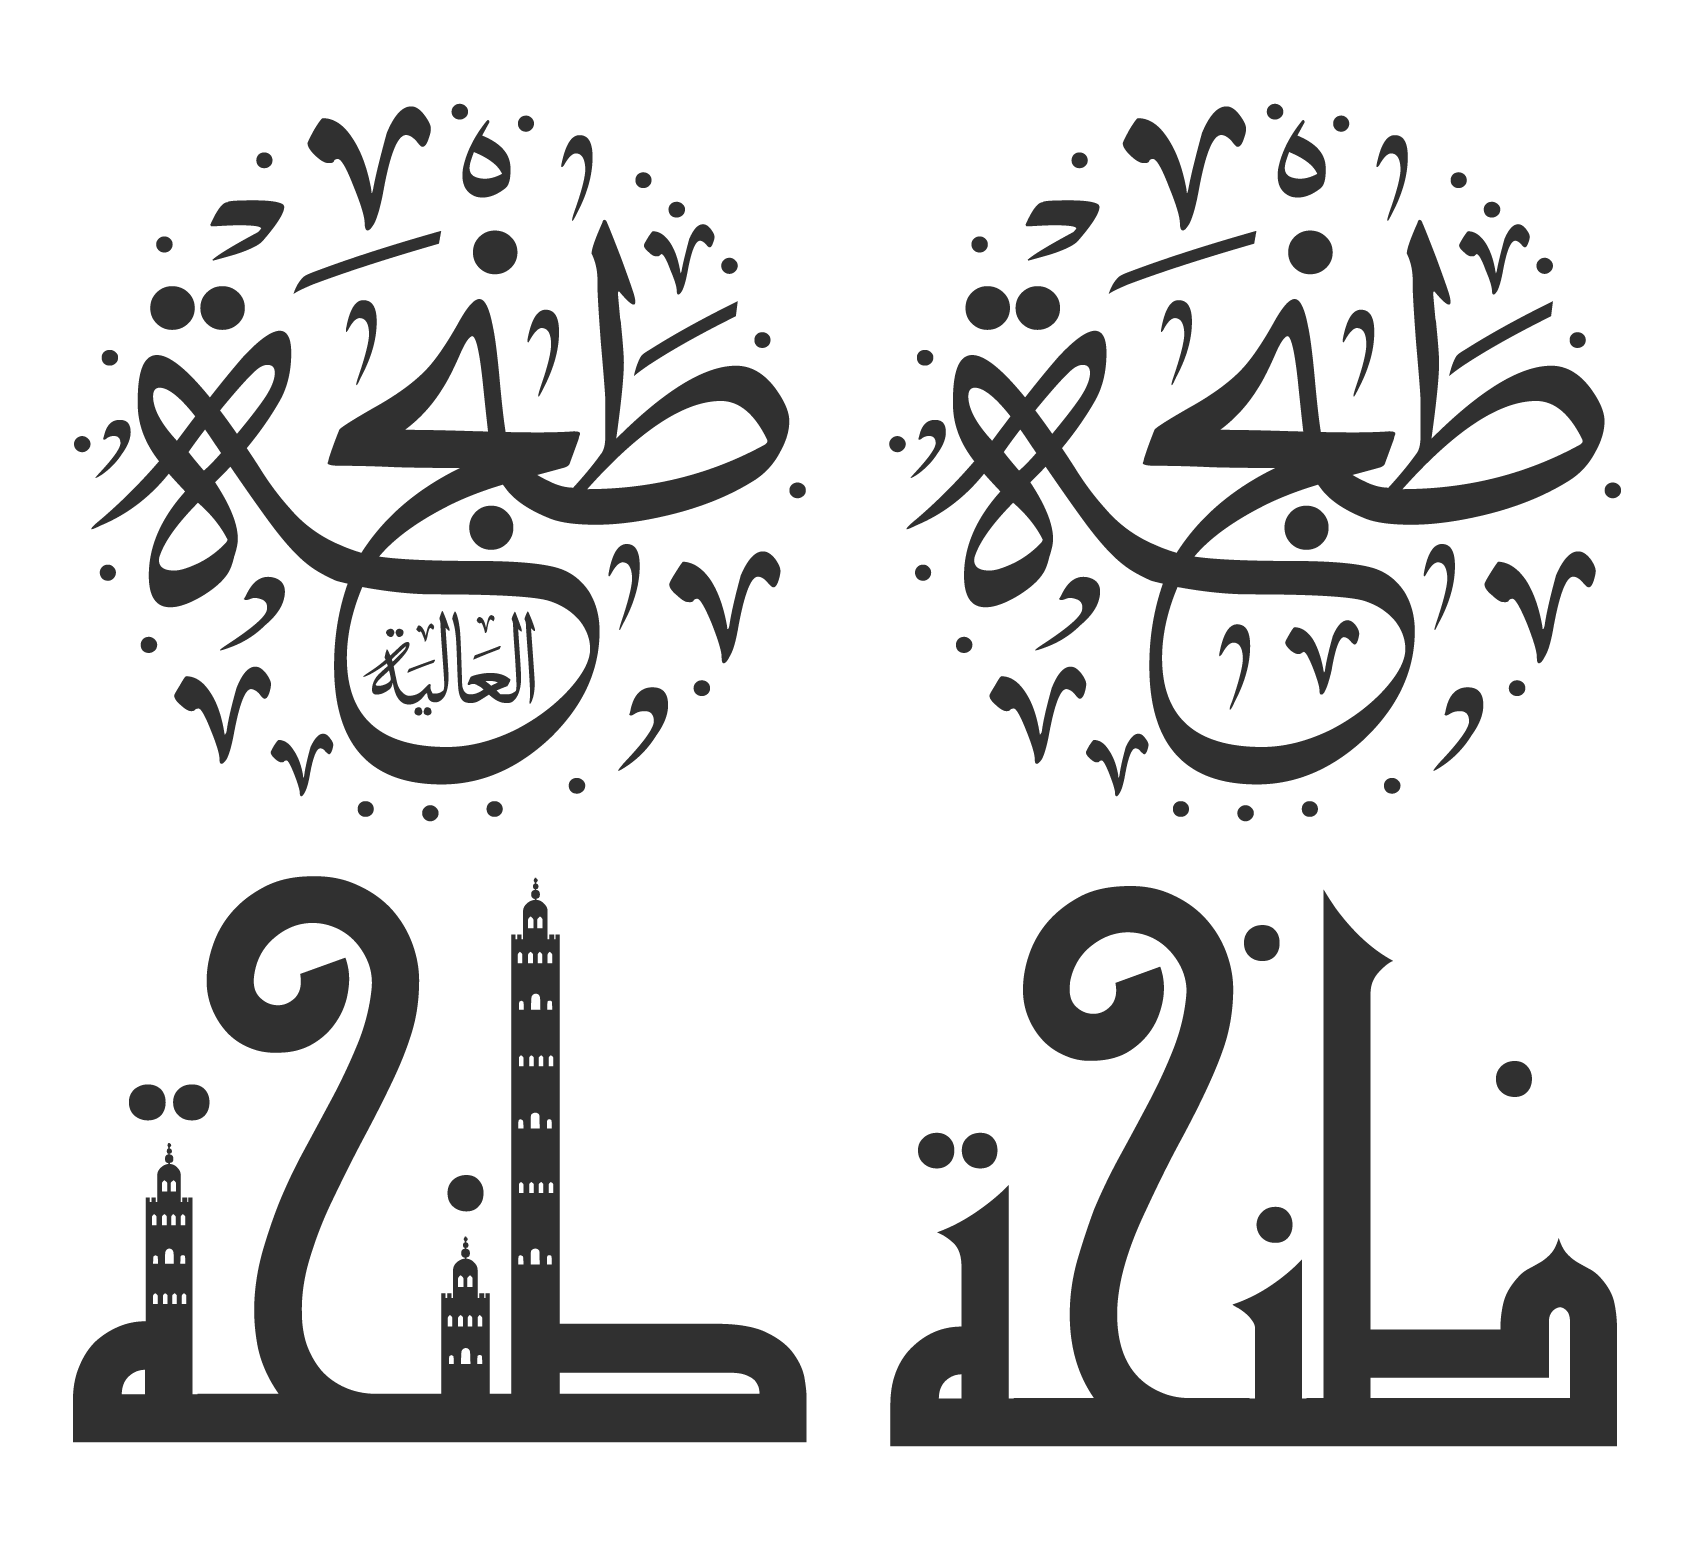 tanger morocco scripts vector svg eps psd ai pdf png download free 2020 #tanger #morocco #arab #arabic #islam #maroc #fonts #vector